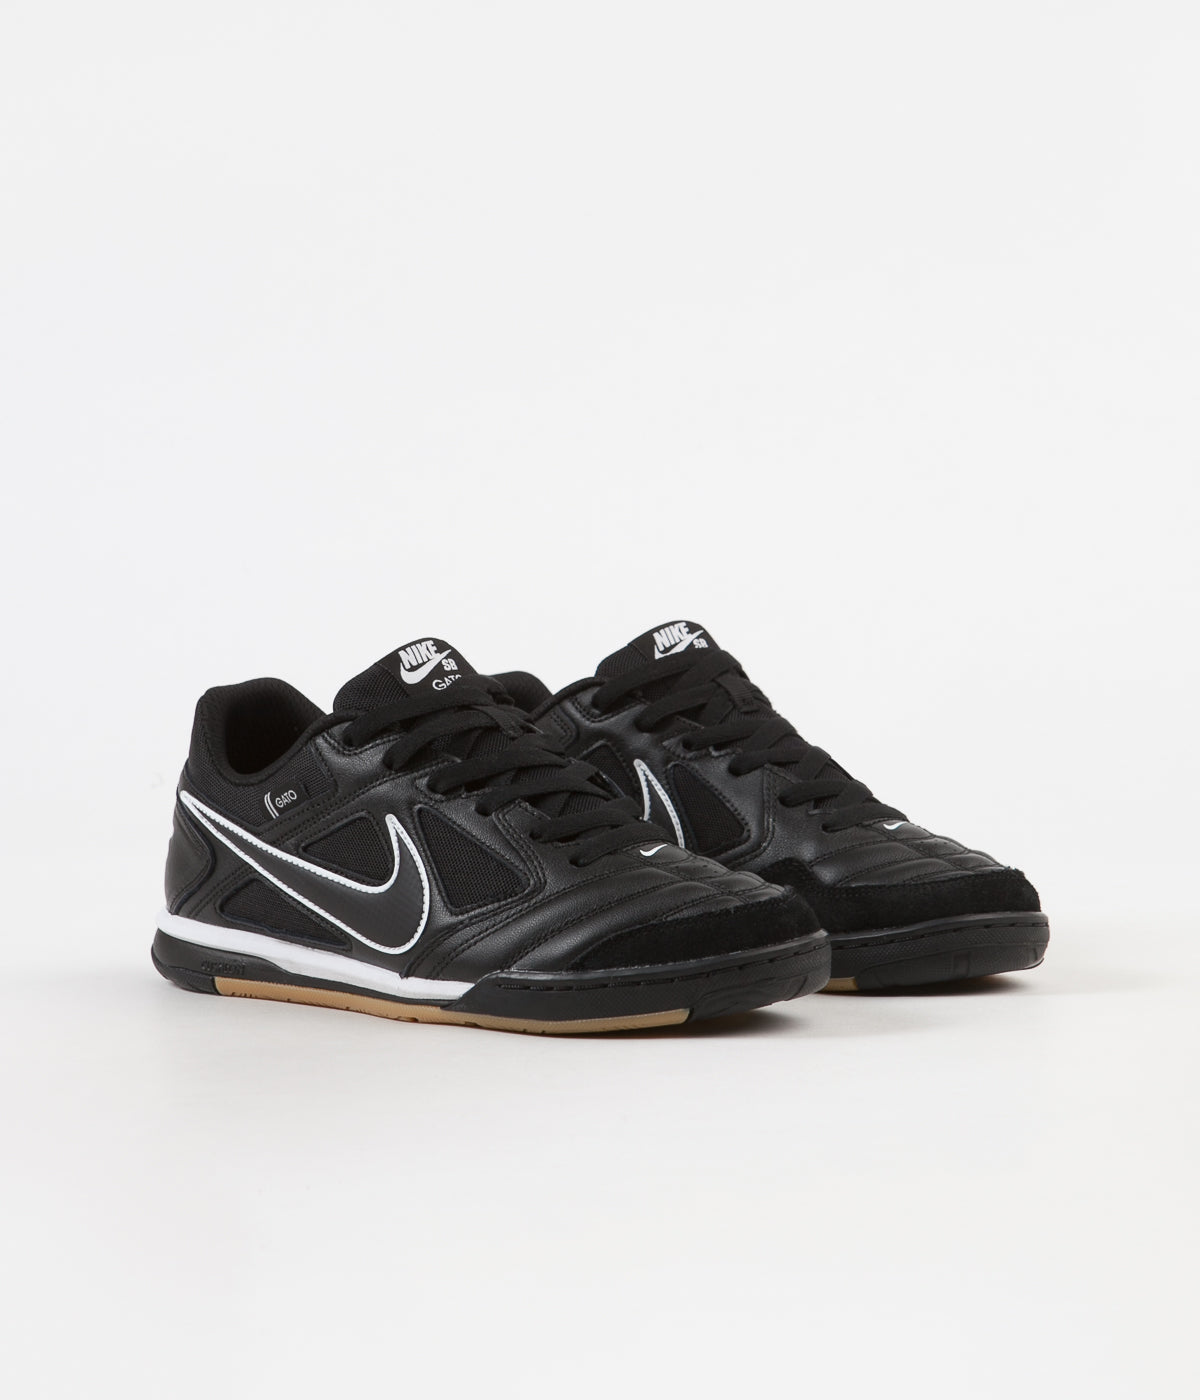 d367201762 ... Nike SB Gato Shoes - Black   Black - White - Gum Light Brown ...